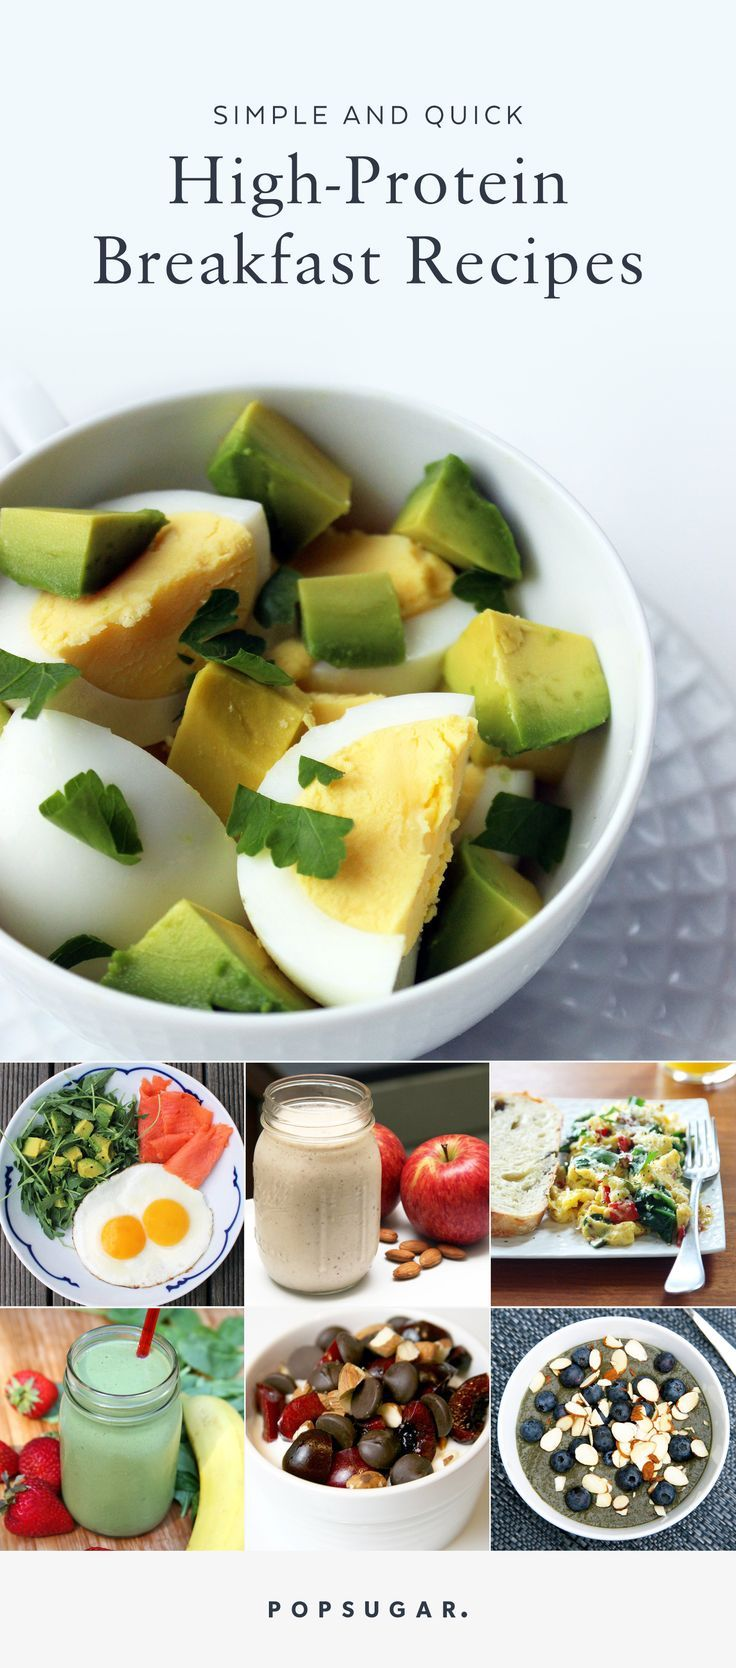 A healthy, high-protein meal can still be made on even the craziest of days. These 21 meals all contain at least 15 grams of protein and take well under 10 minutes to prep. #Breakfast #healthy